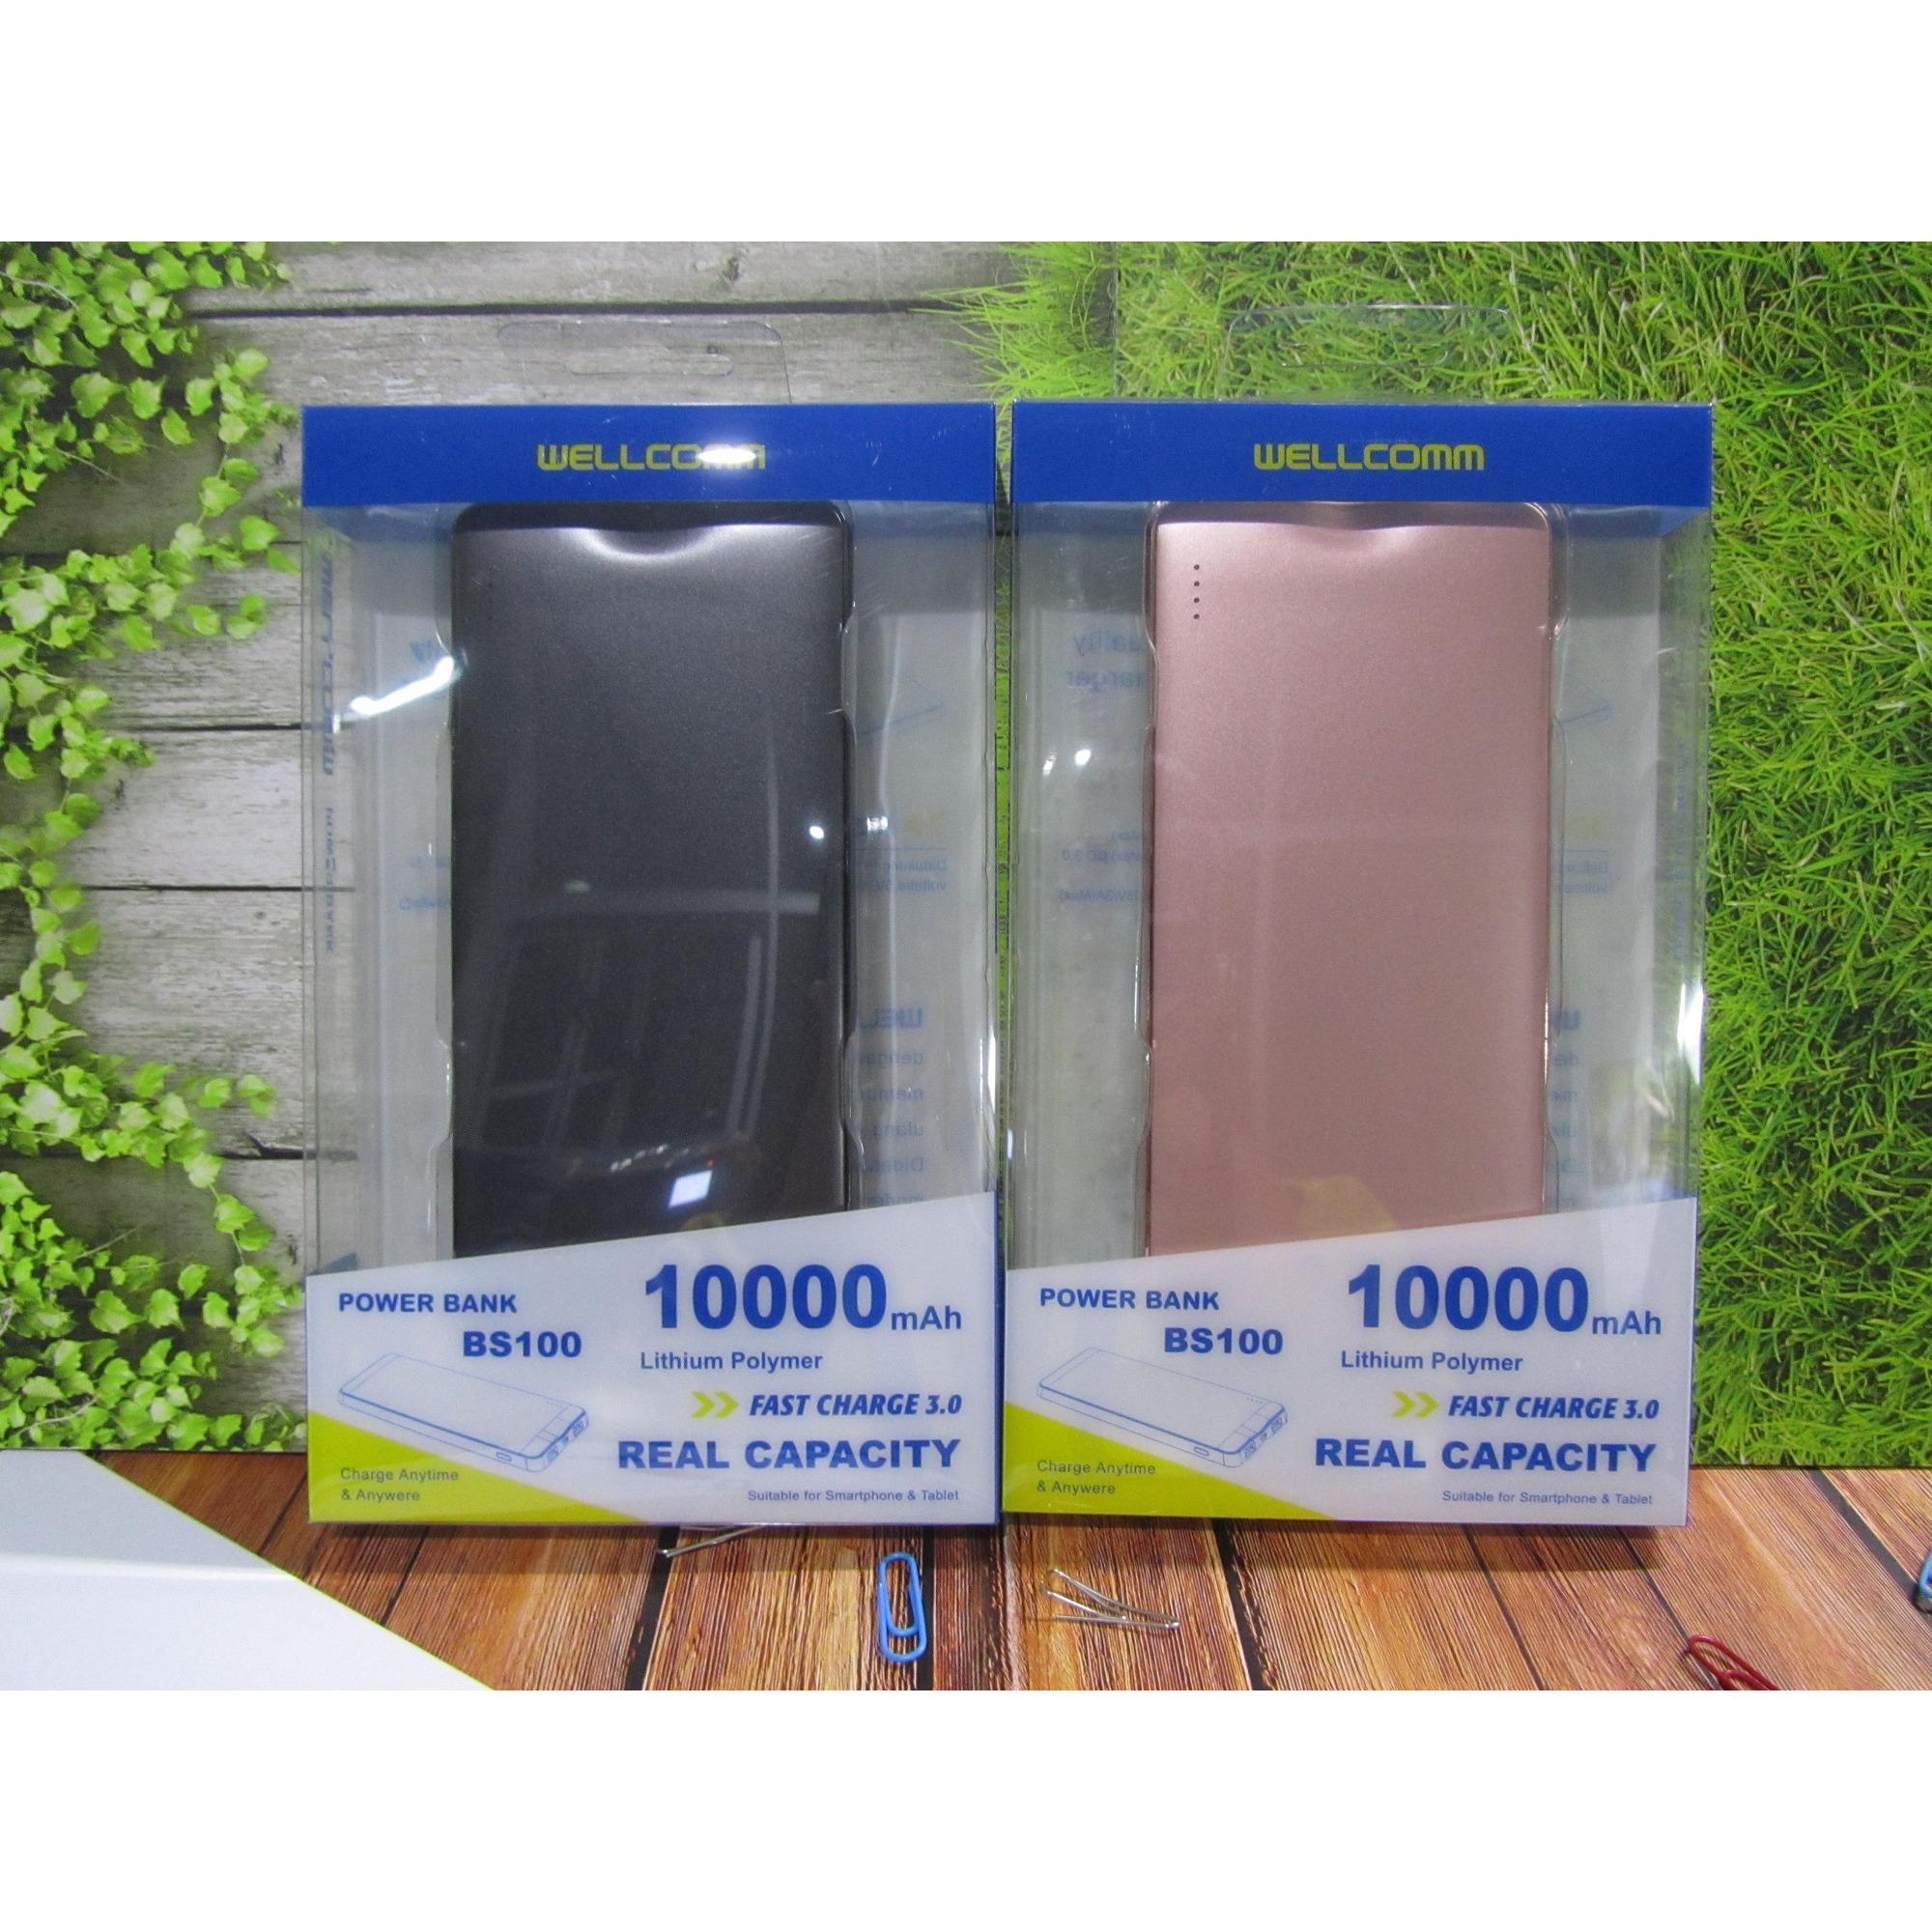 POWERBANK WELLCOMM BS 10.000 mAh